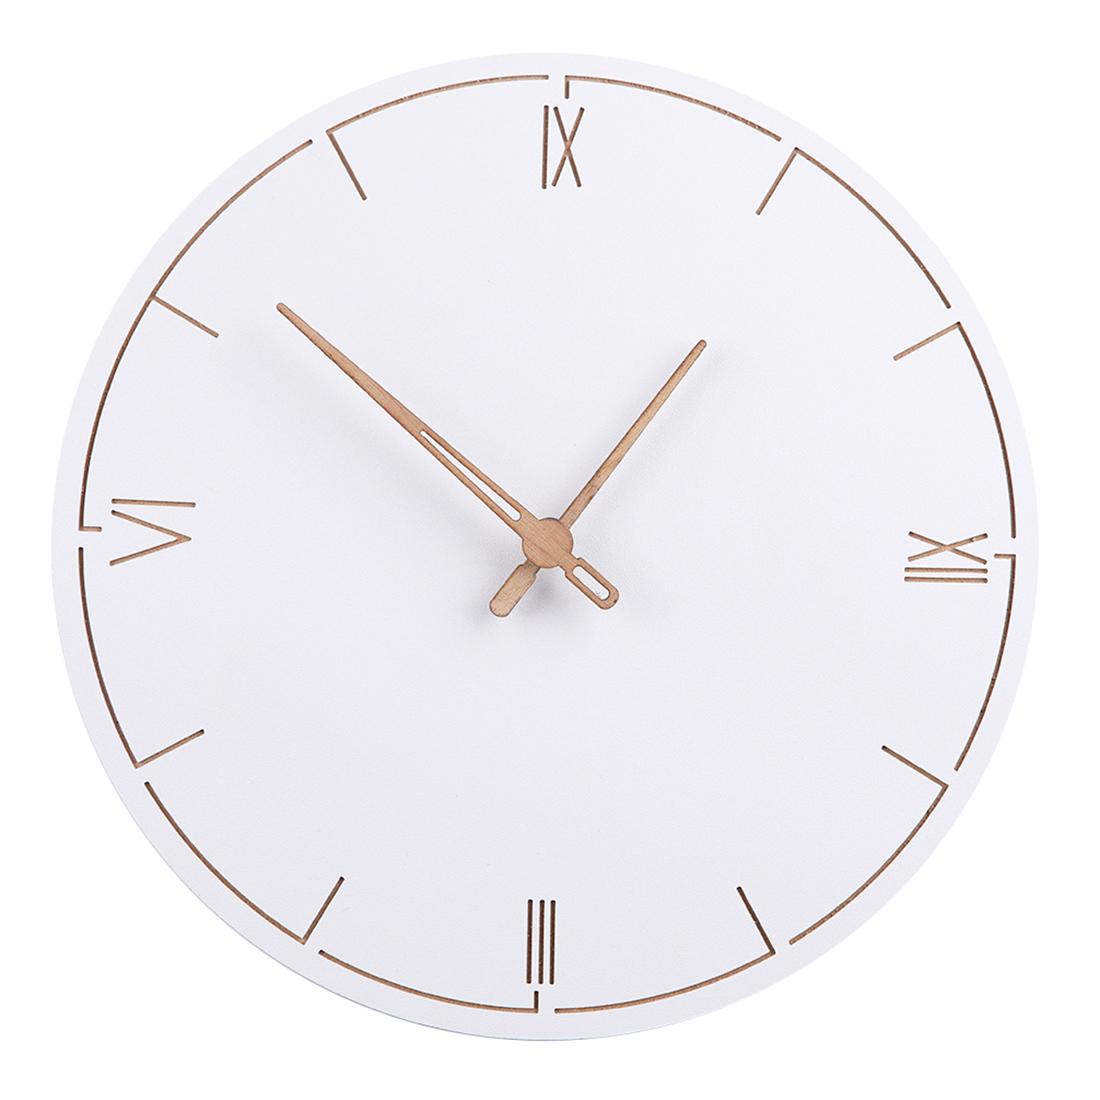 29Cm Nordic Style Fashionable Simple Silent Wall Clocksfor Home Decor Pure White Type Wall Clock Quartz Modern Design Timer